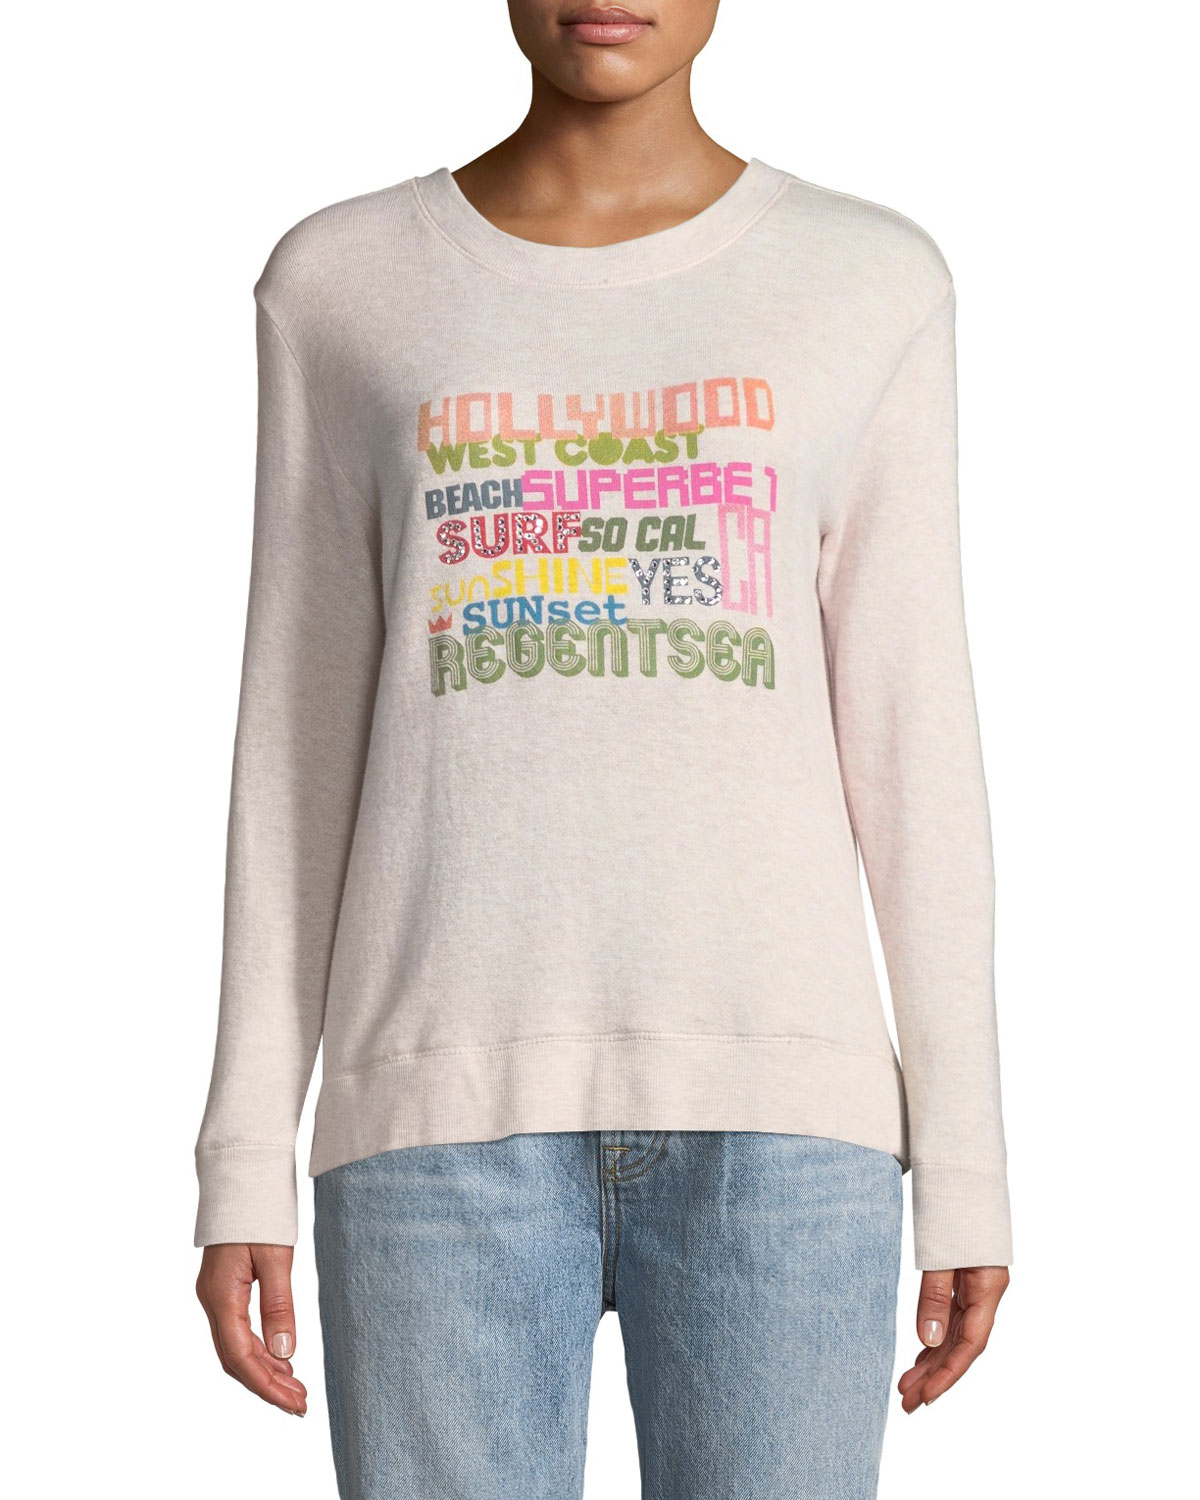 LE SUPERBE Bay St. Hollywood Graphic Pullover Sweatshirt in Multi Pattern